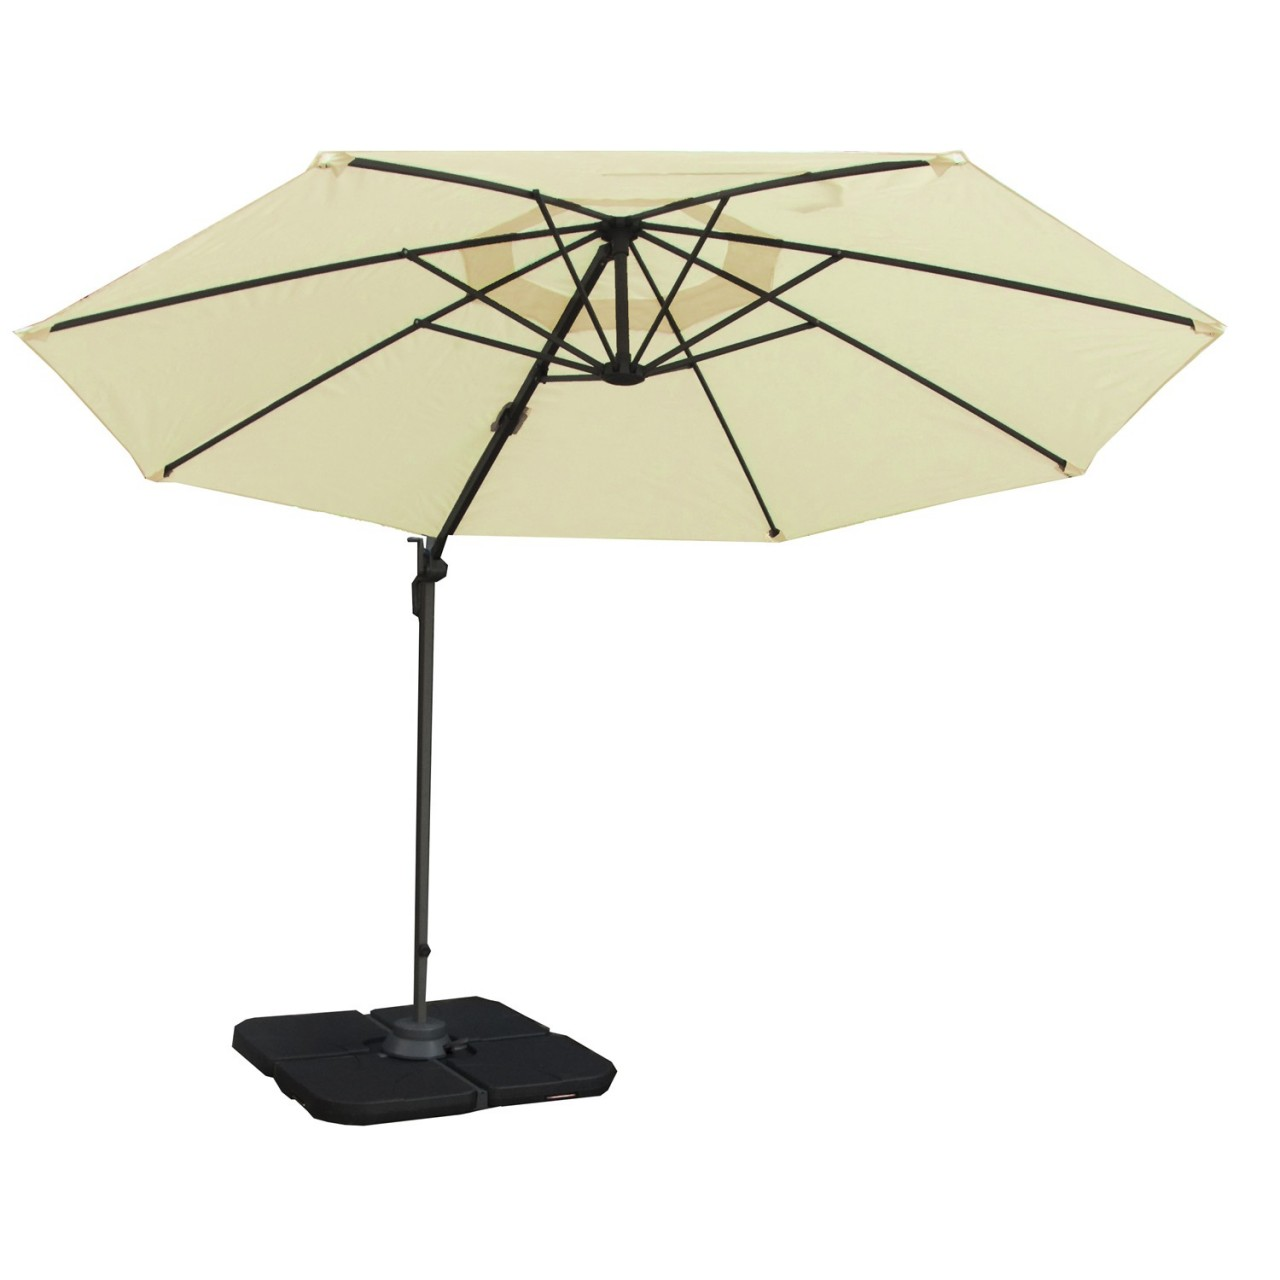 https://www.firstfurniture.co.uk/pub/media/catalog/product/s/a/sahara_3m_round_deluxe_rotational_cantilever_parasol_with_cross_stand_UkNGMDQxNA_1_14301.jpg